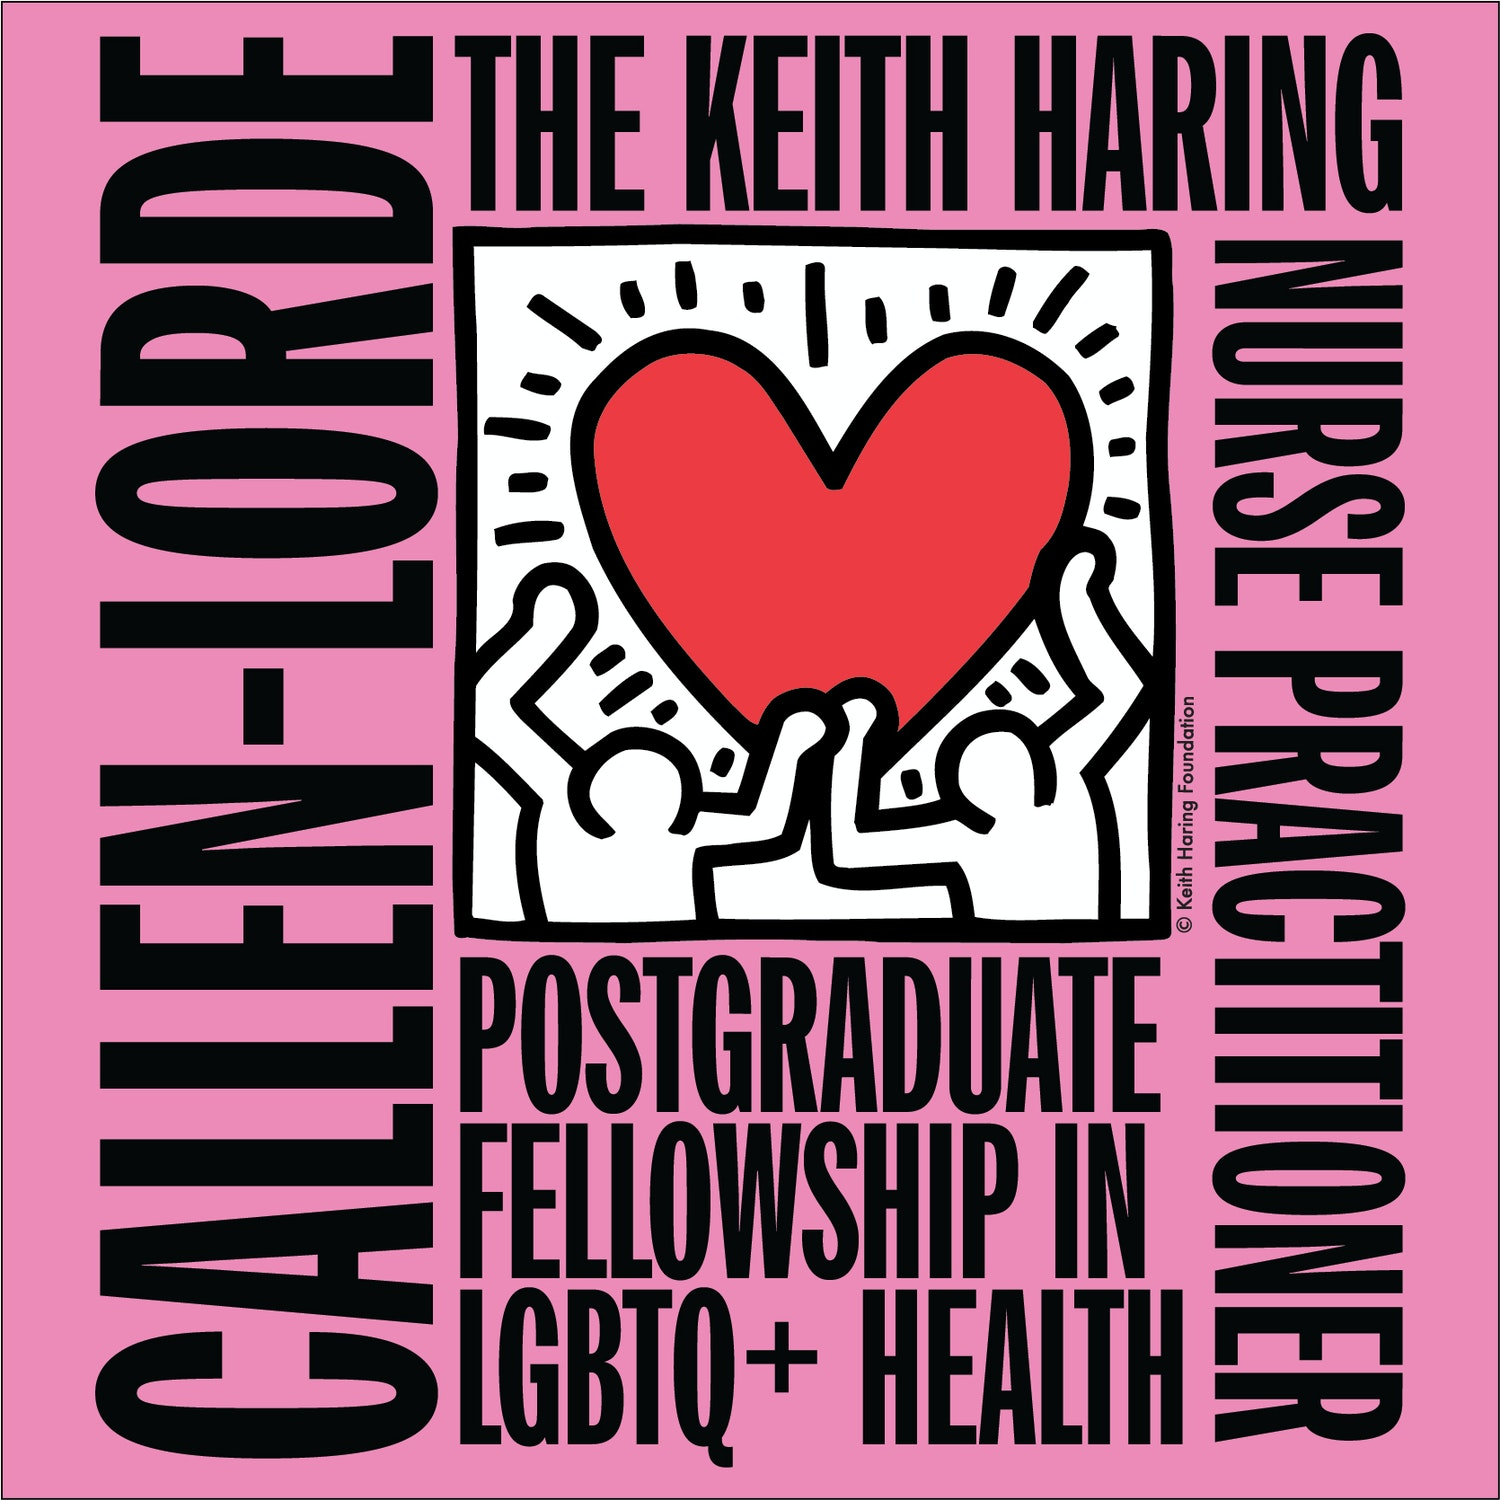 Introducing the Keith Haring Nurse Practitioner Postgraduate Fellowship in LGBTQ+ Health